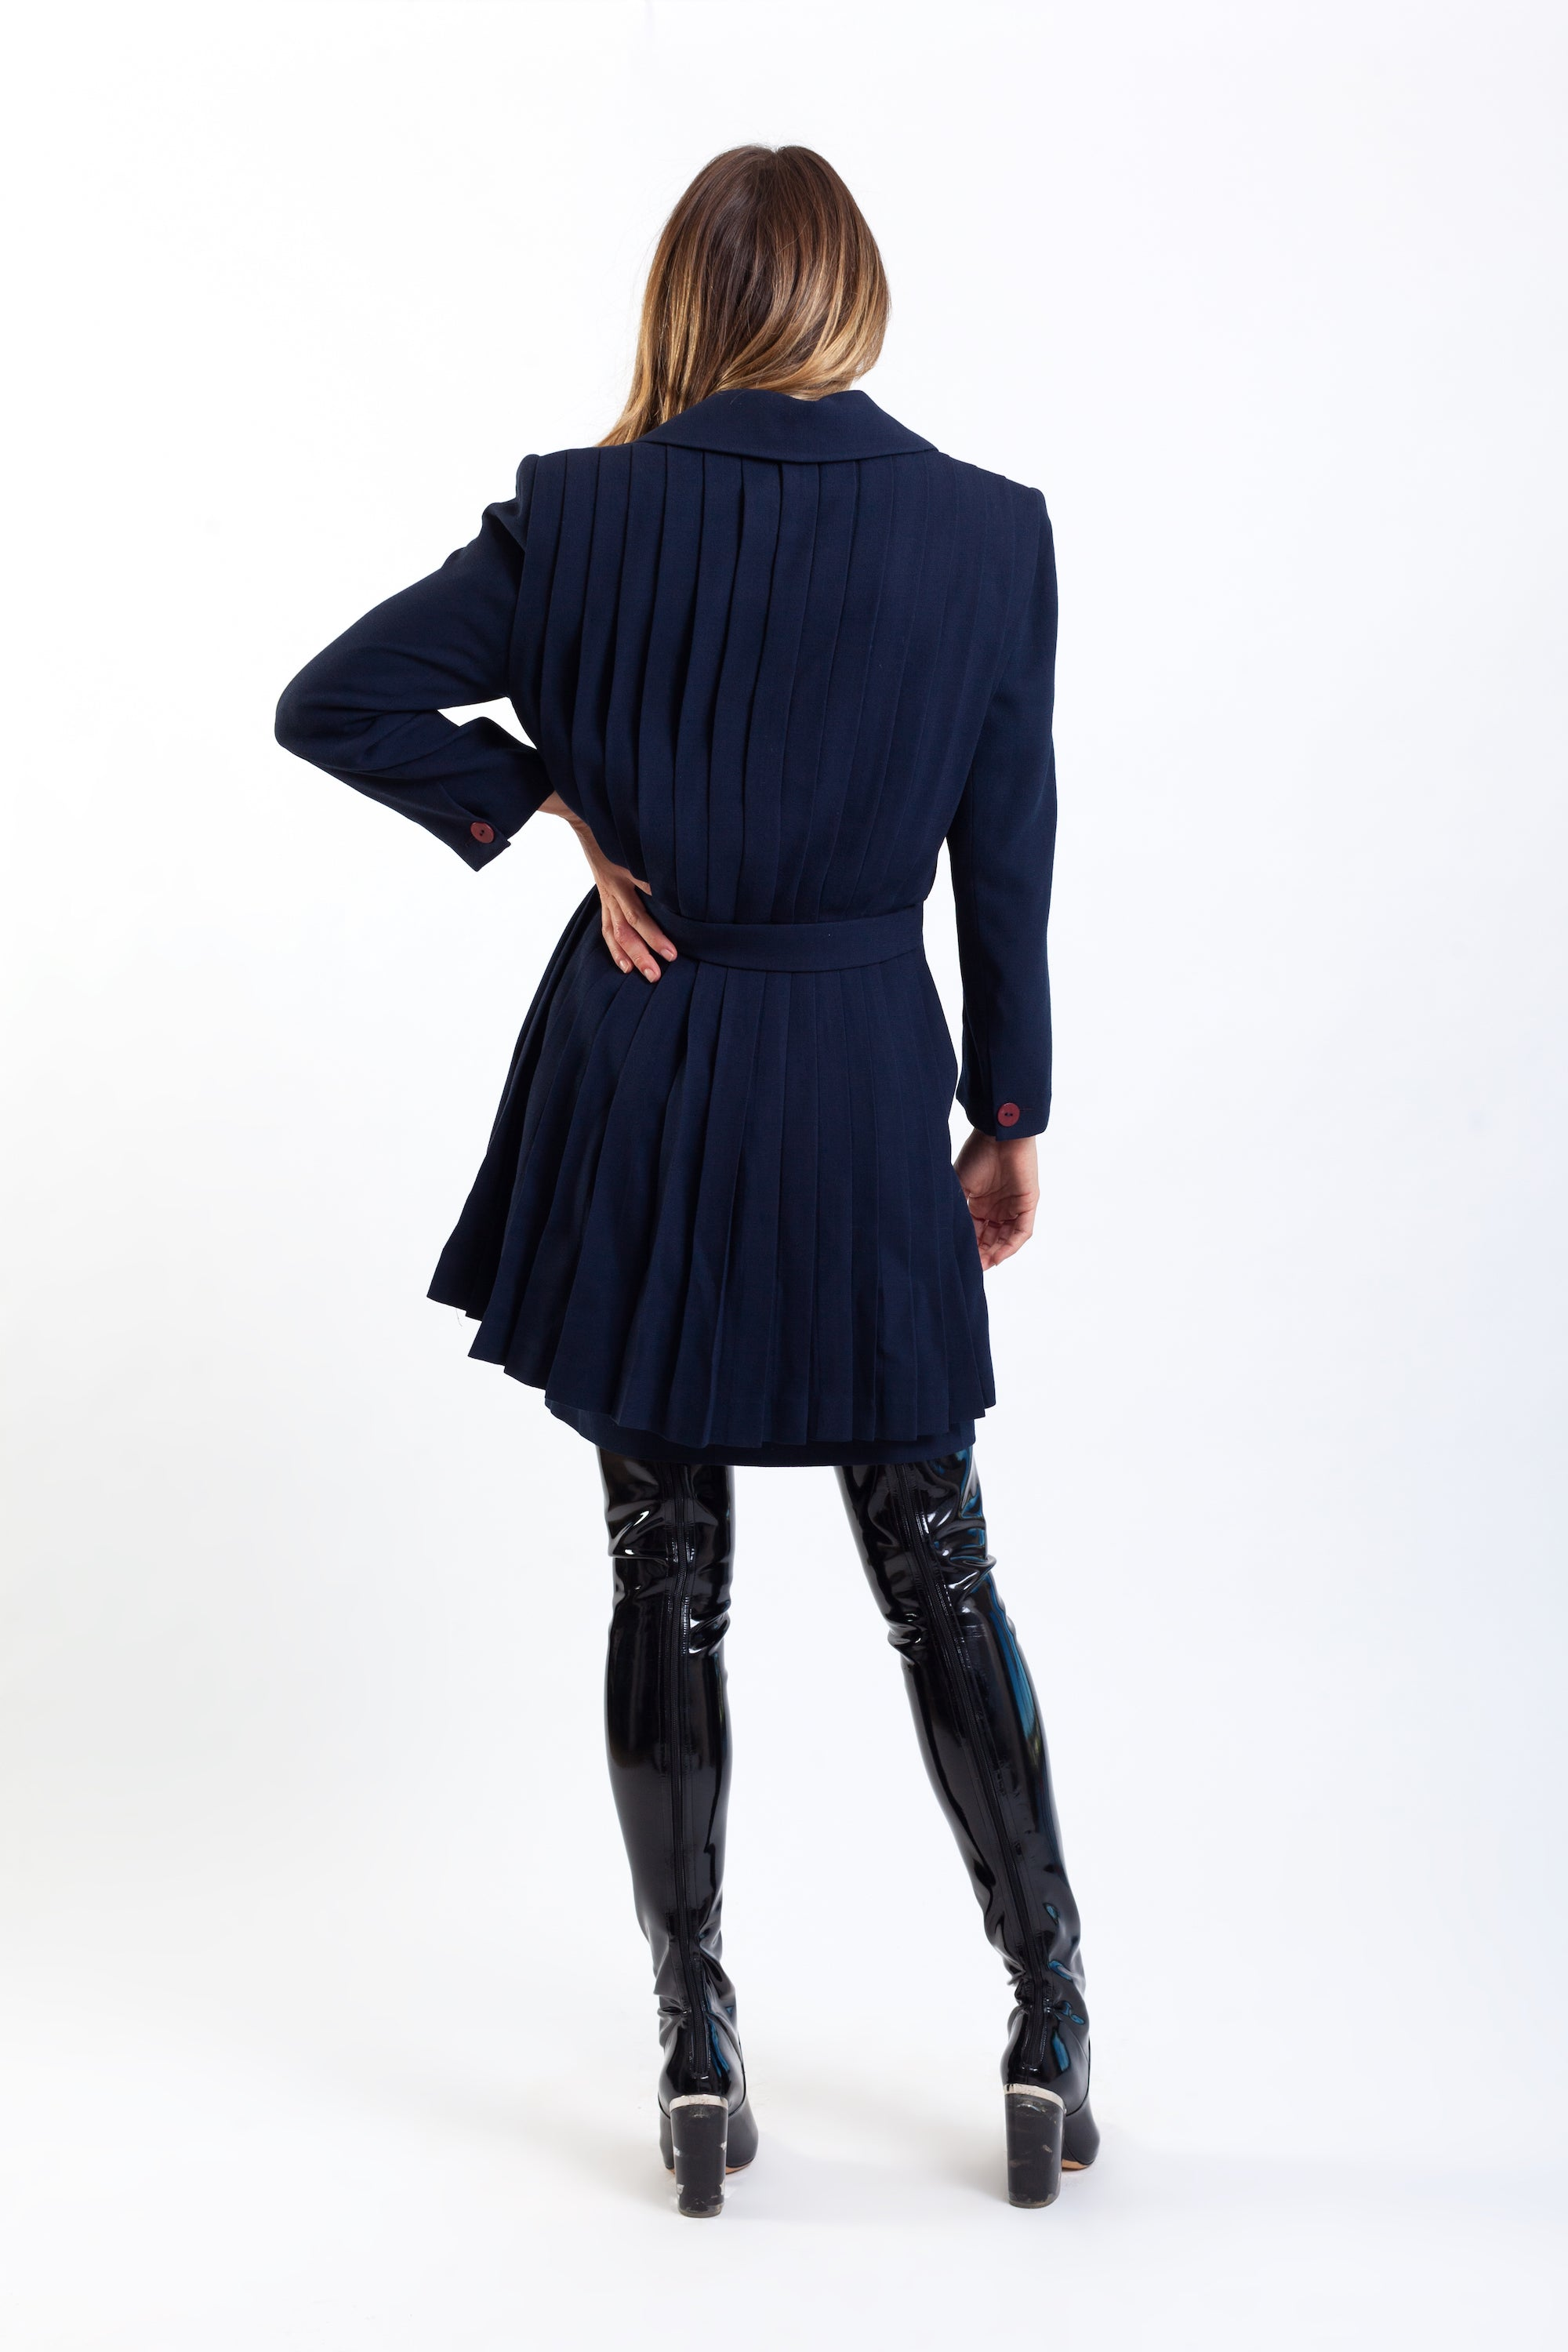 Chloe by Karl Lagerfeld <br> 70's/80's wool crepe pleated back skirt suit